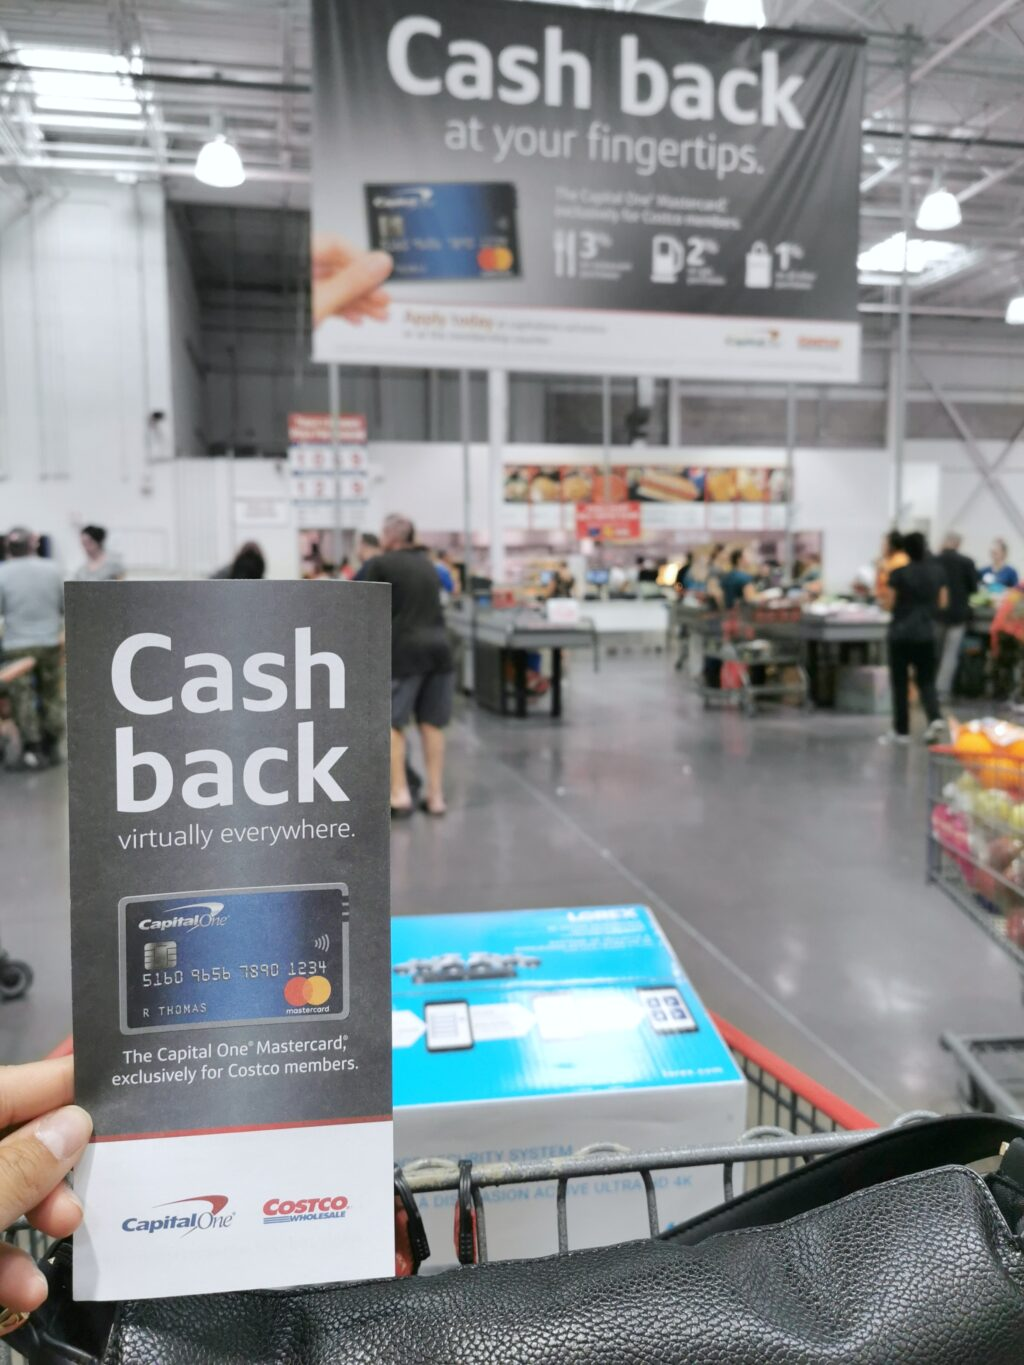 Shopping cart with Cash Back brochure showing Capital One's Mastercard. In the background, a large banner shows the same card.